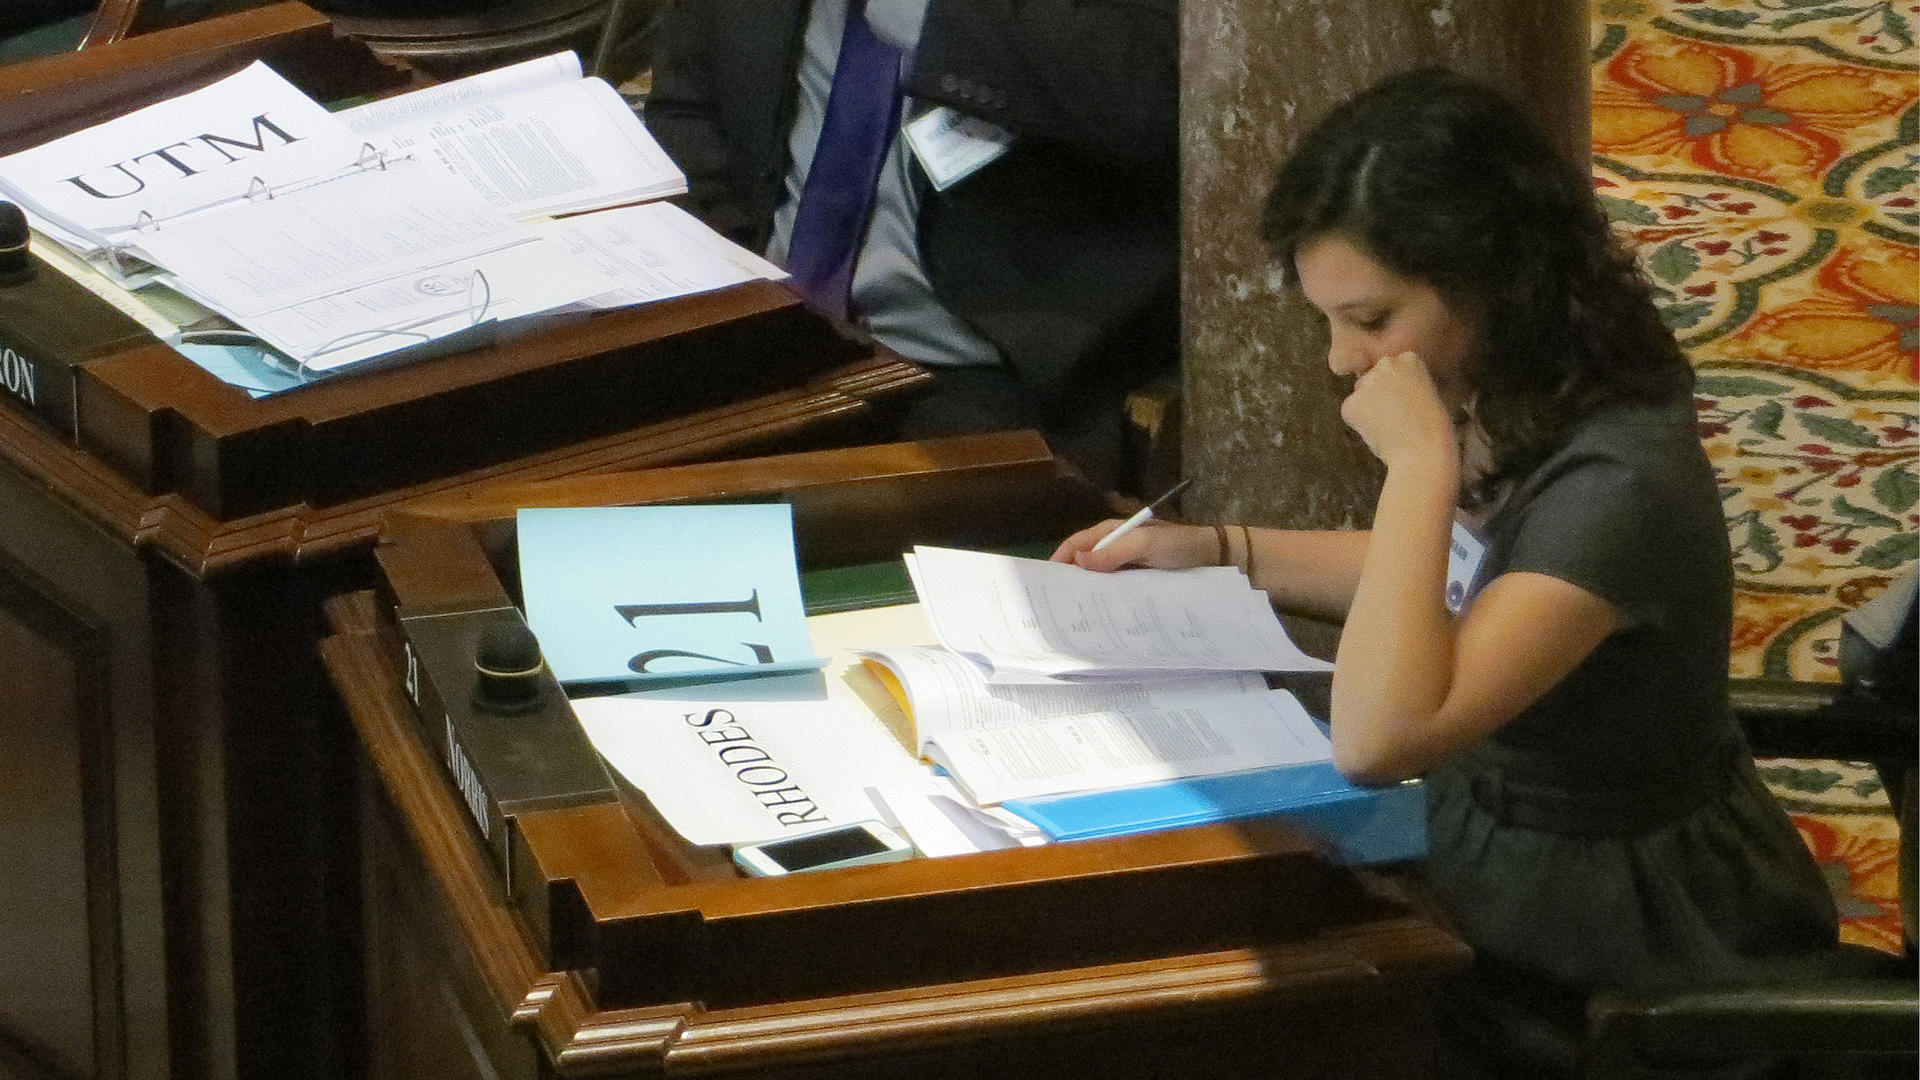 a female student studies legislative papers at a desk